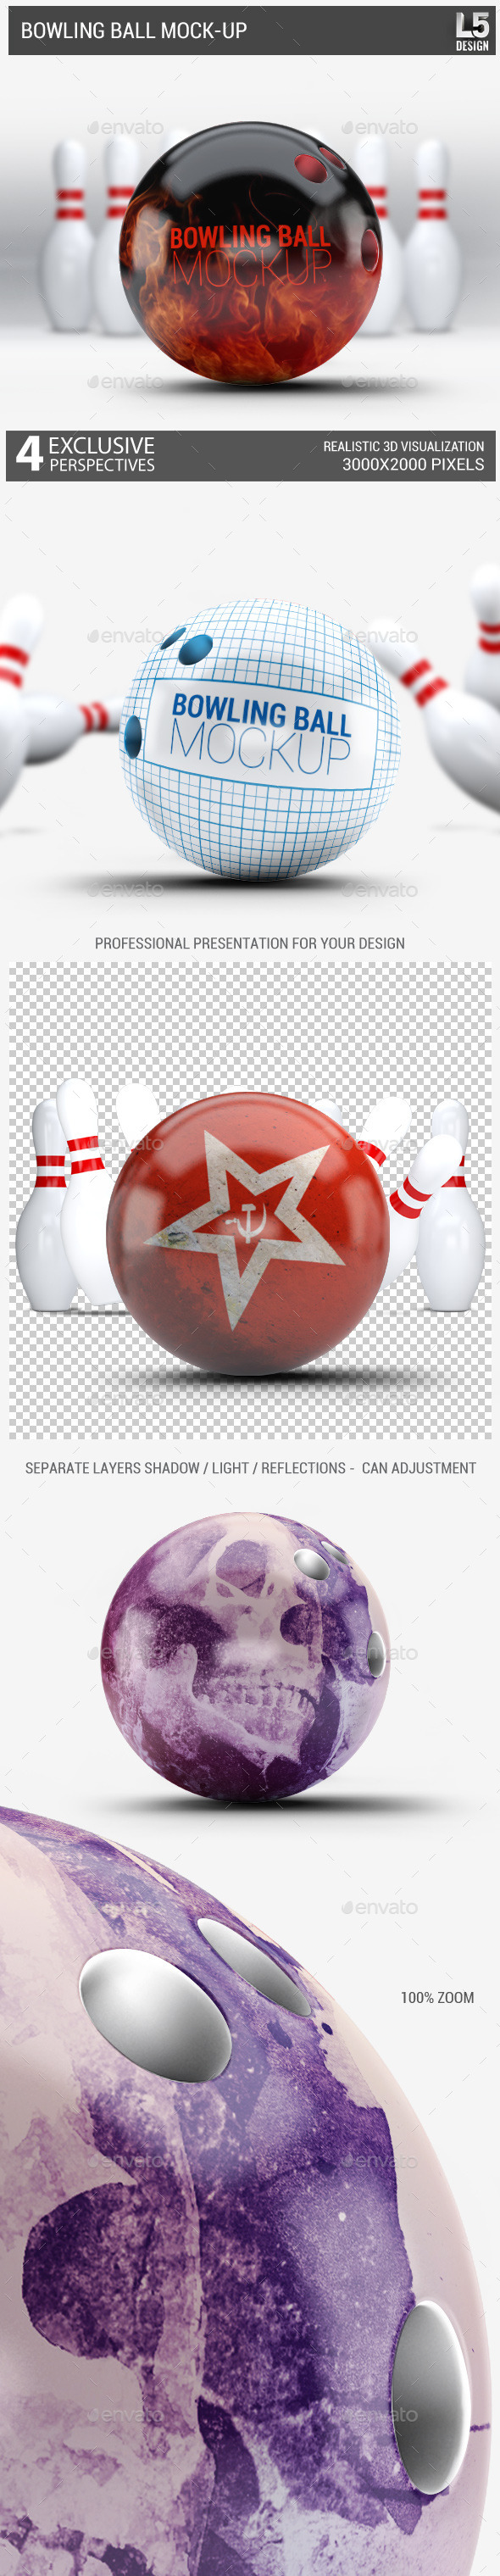 Bowling Ball Mock-Up